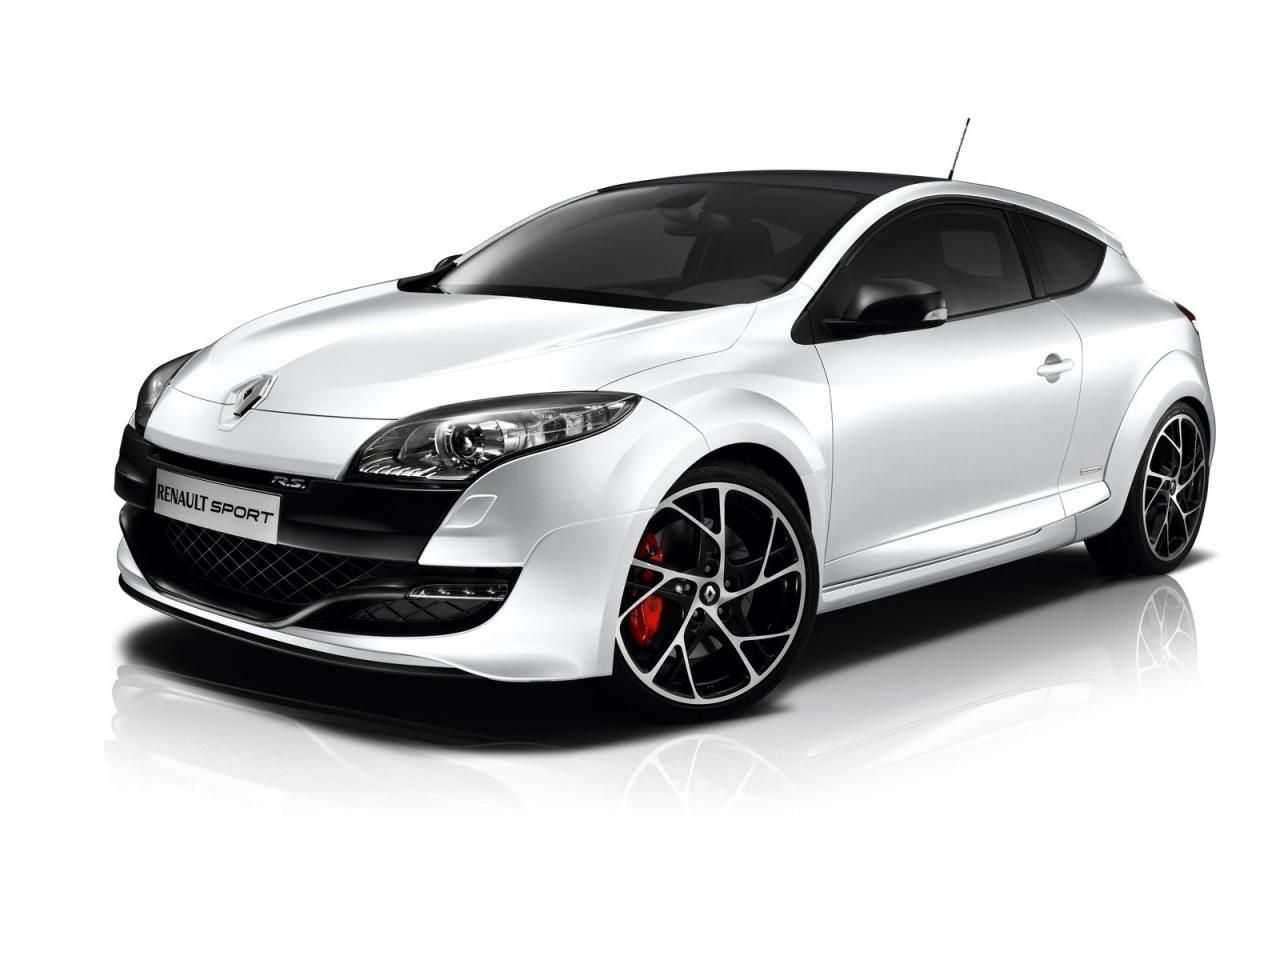 Renault Megane Rs 250 Monaco Grand Prix Limited Edition Gilds The